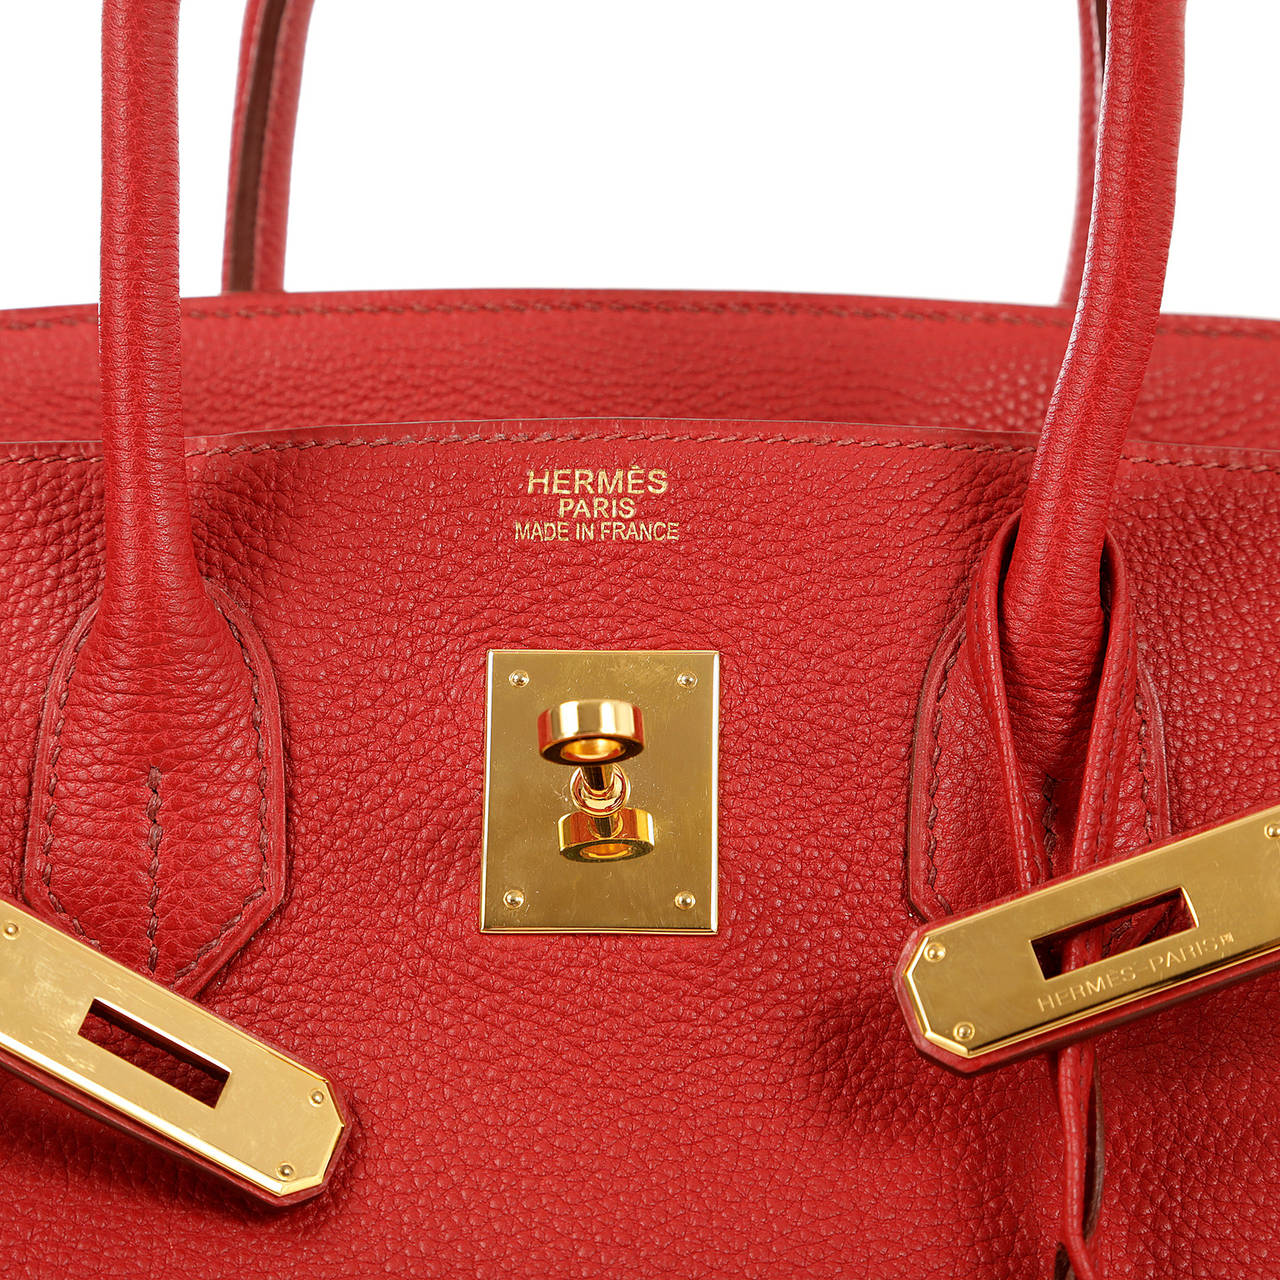 Hermes Red Leather 35 cm Birkin Bag- RED TOGO with GOLD hardware ...